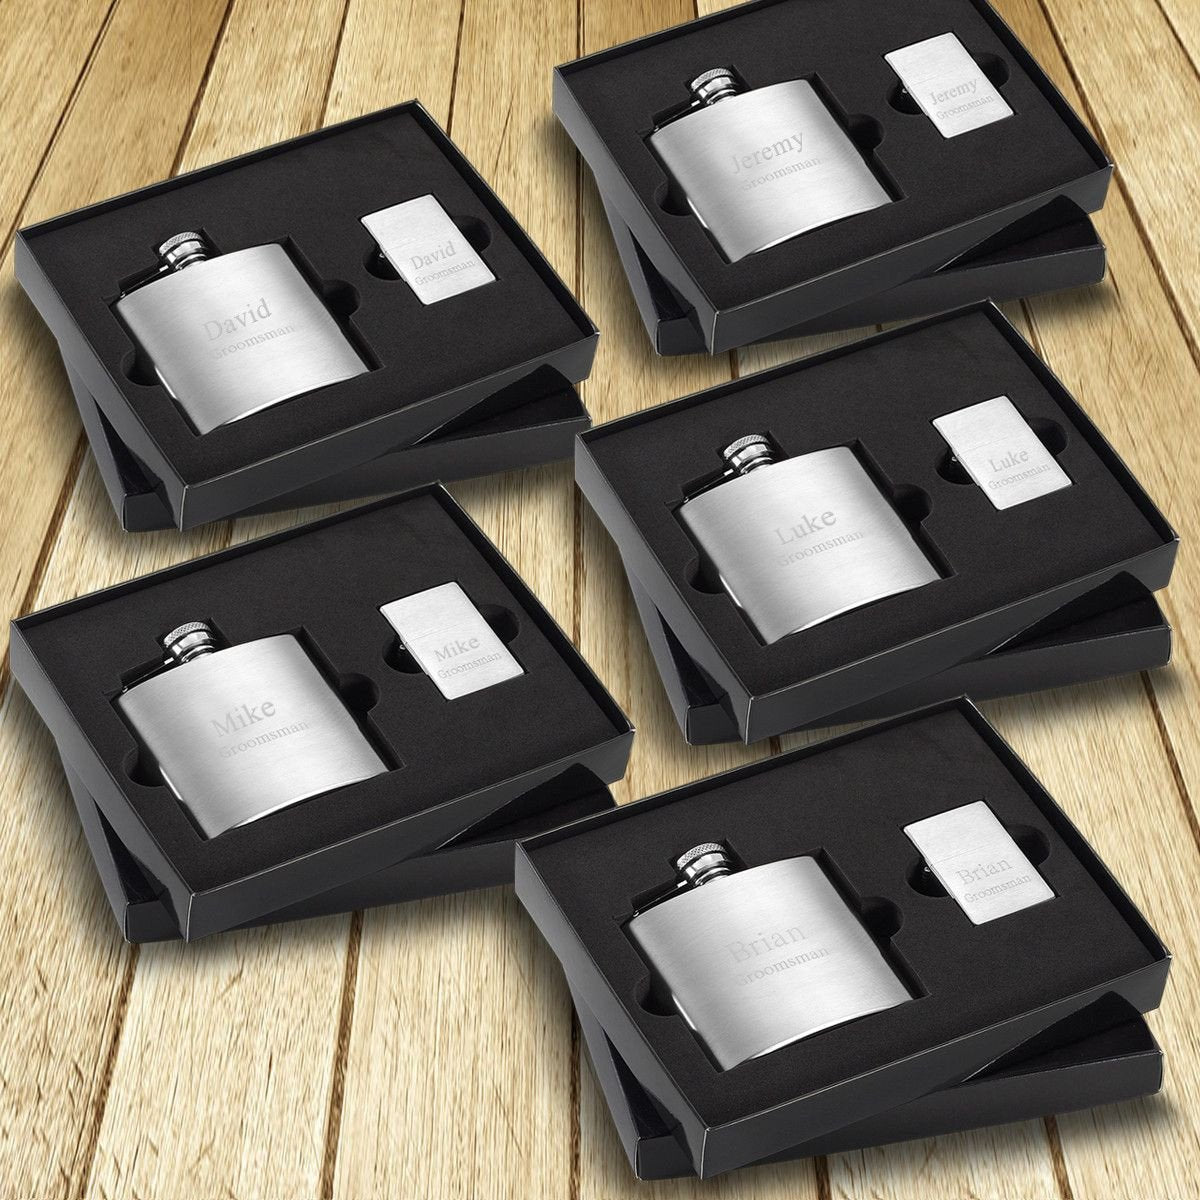 Personalized 4 oz. Brushed Flask and Lighter Gift Box - Set of 5 Boxes